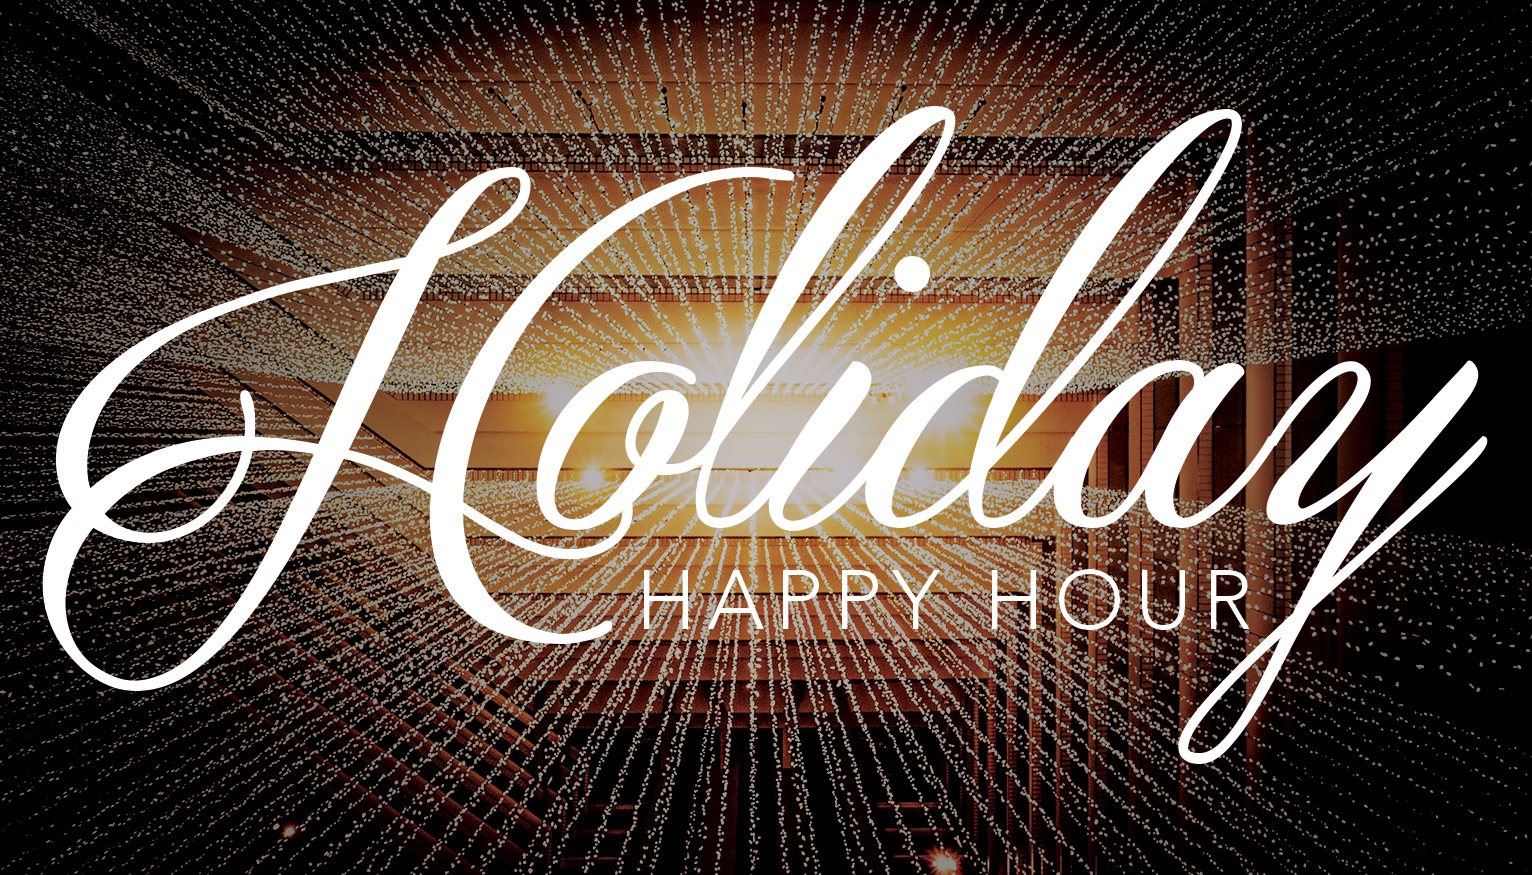 ACG Boston Holiday Happy Hour